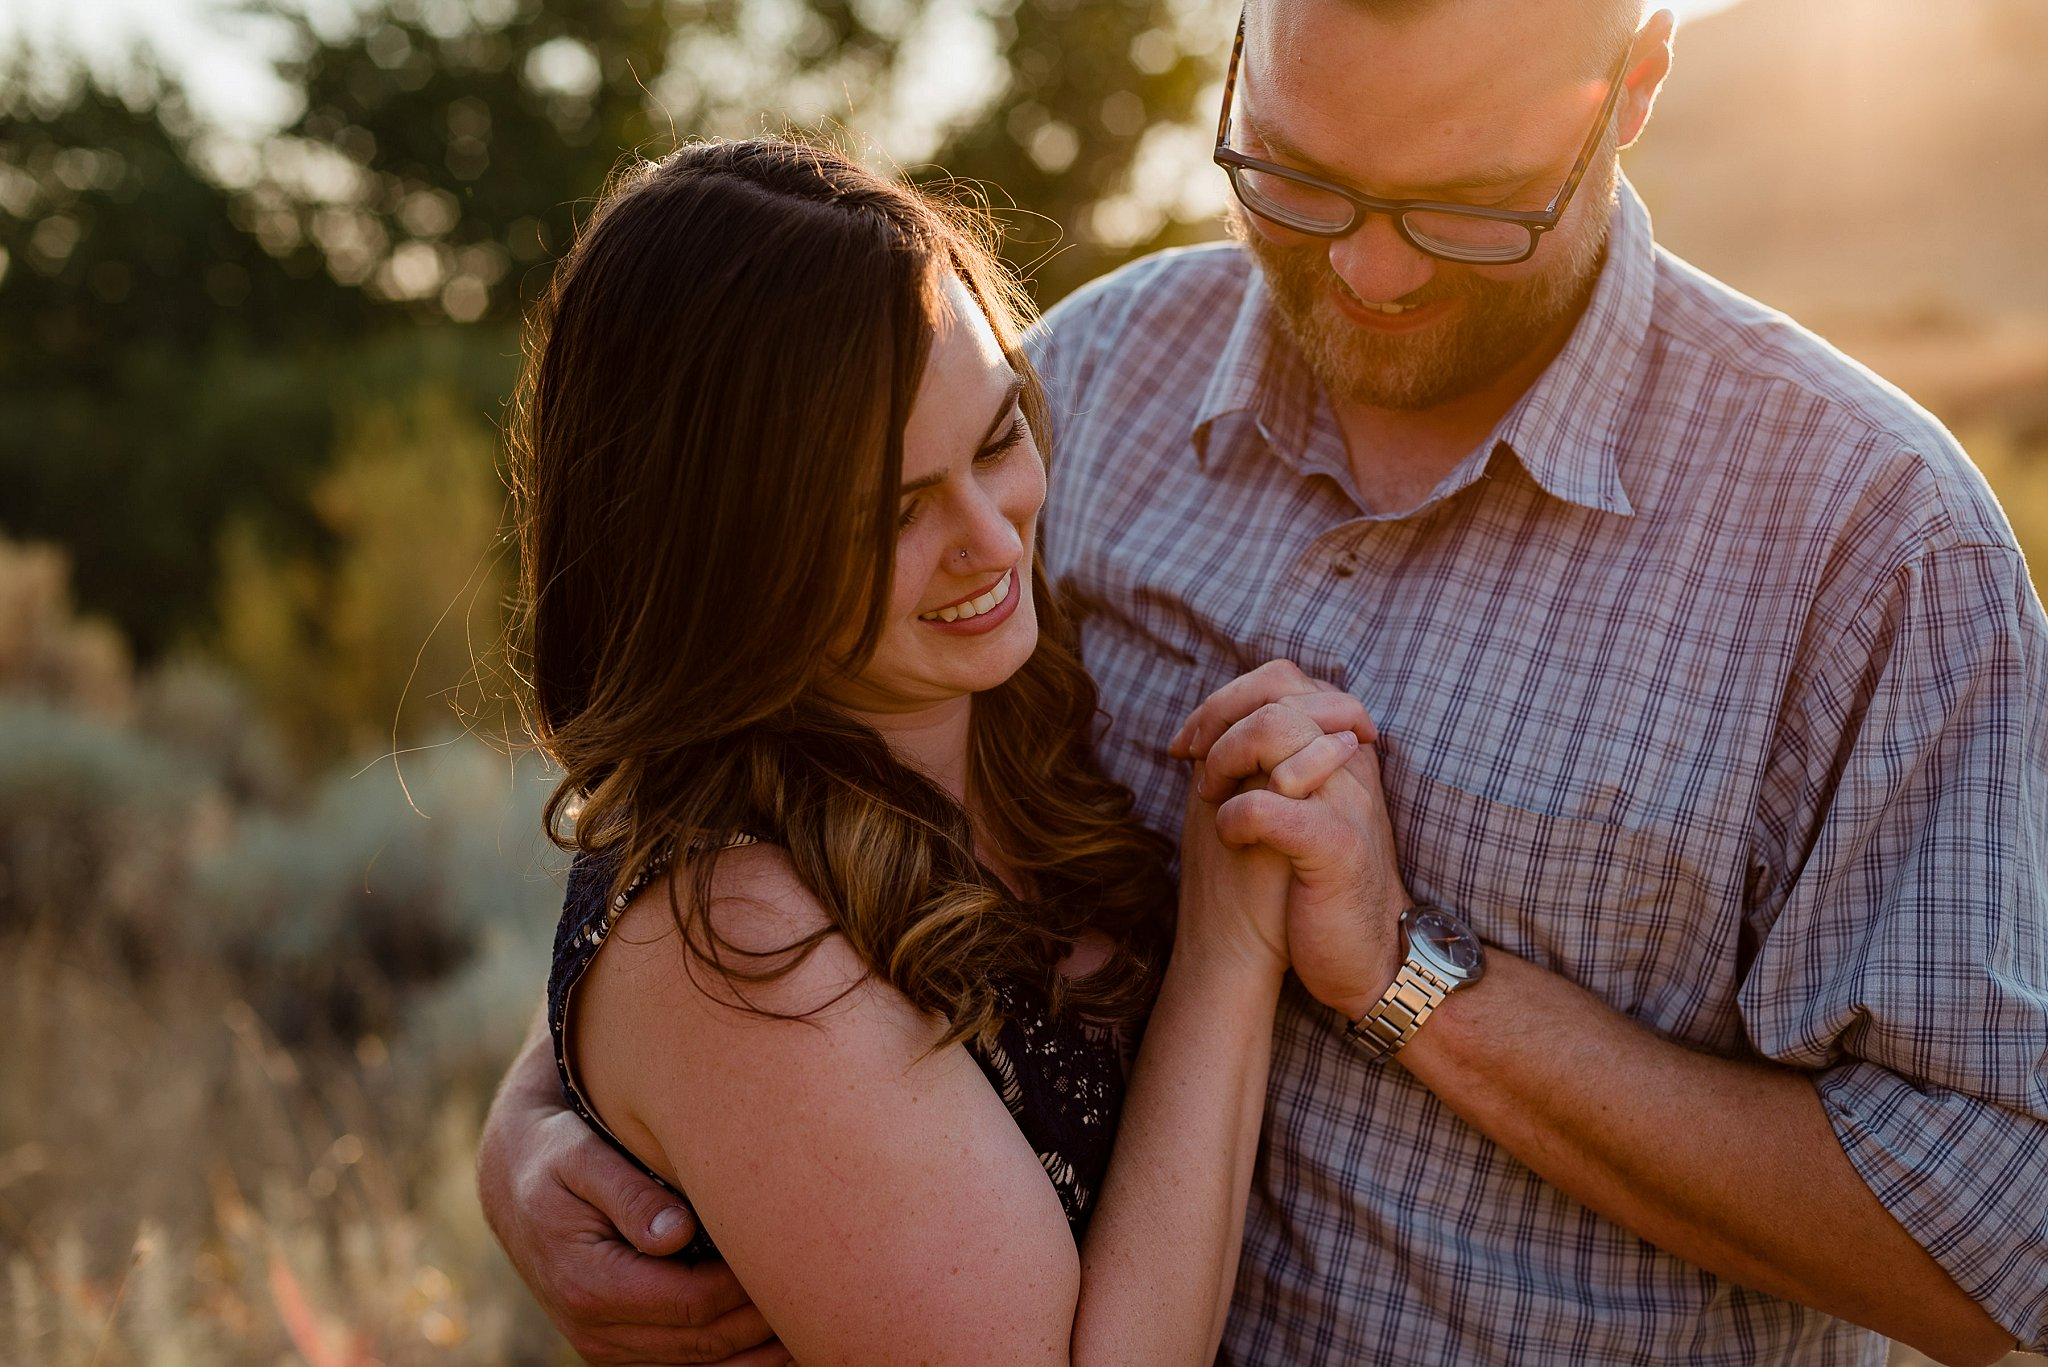 Zilla Photography - Boise Foothills Date Night Couple Session-5_SM.jpg